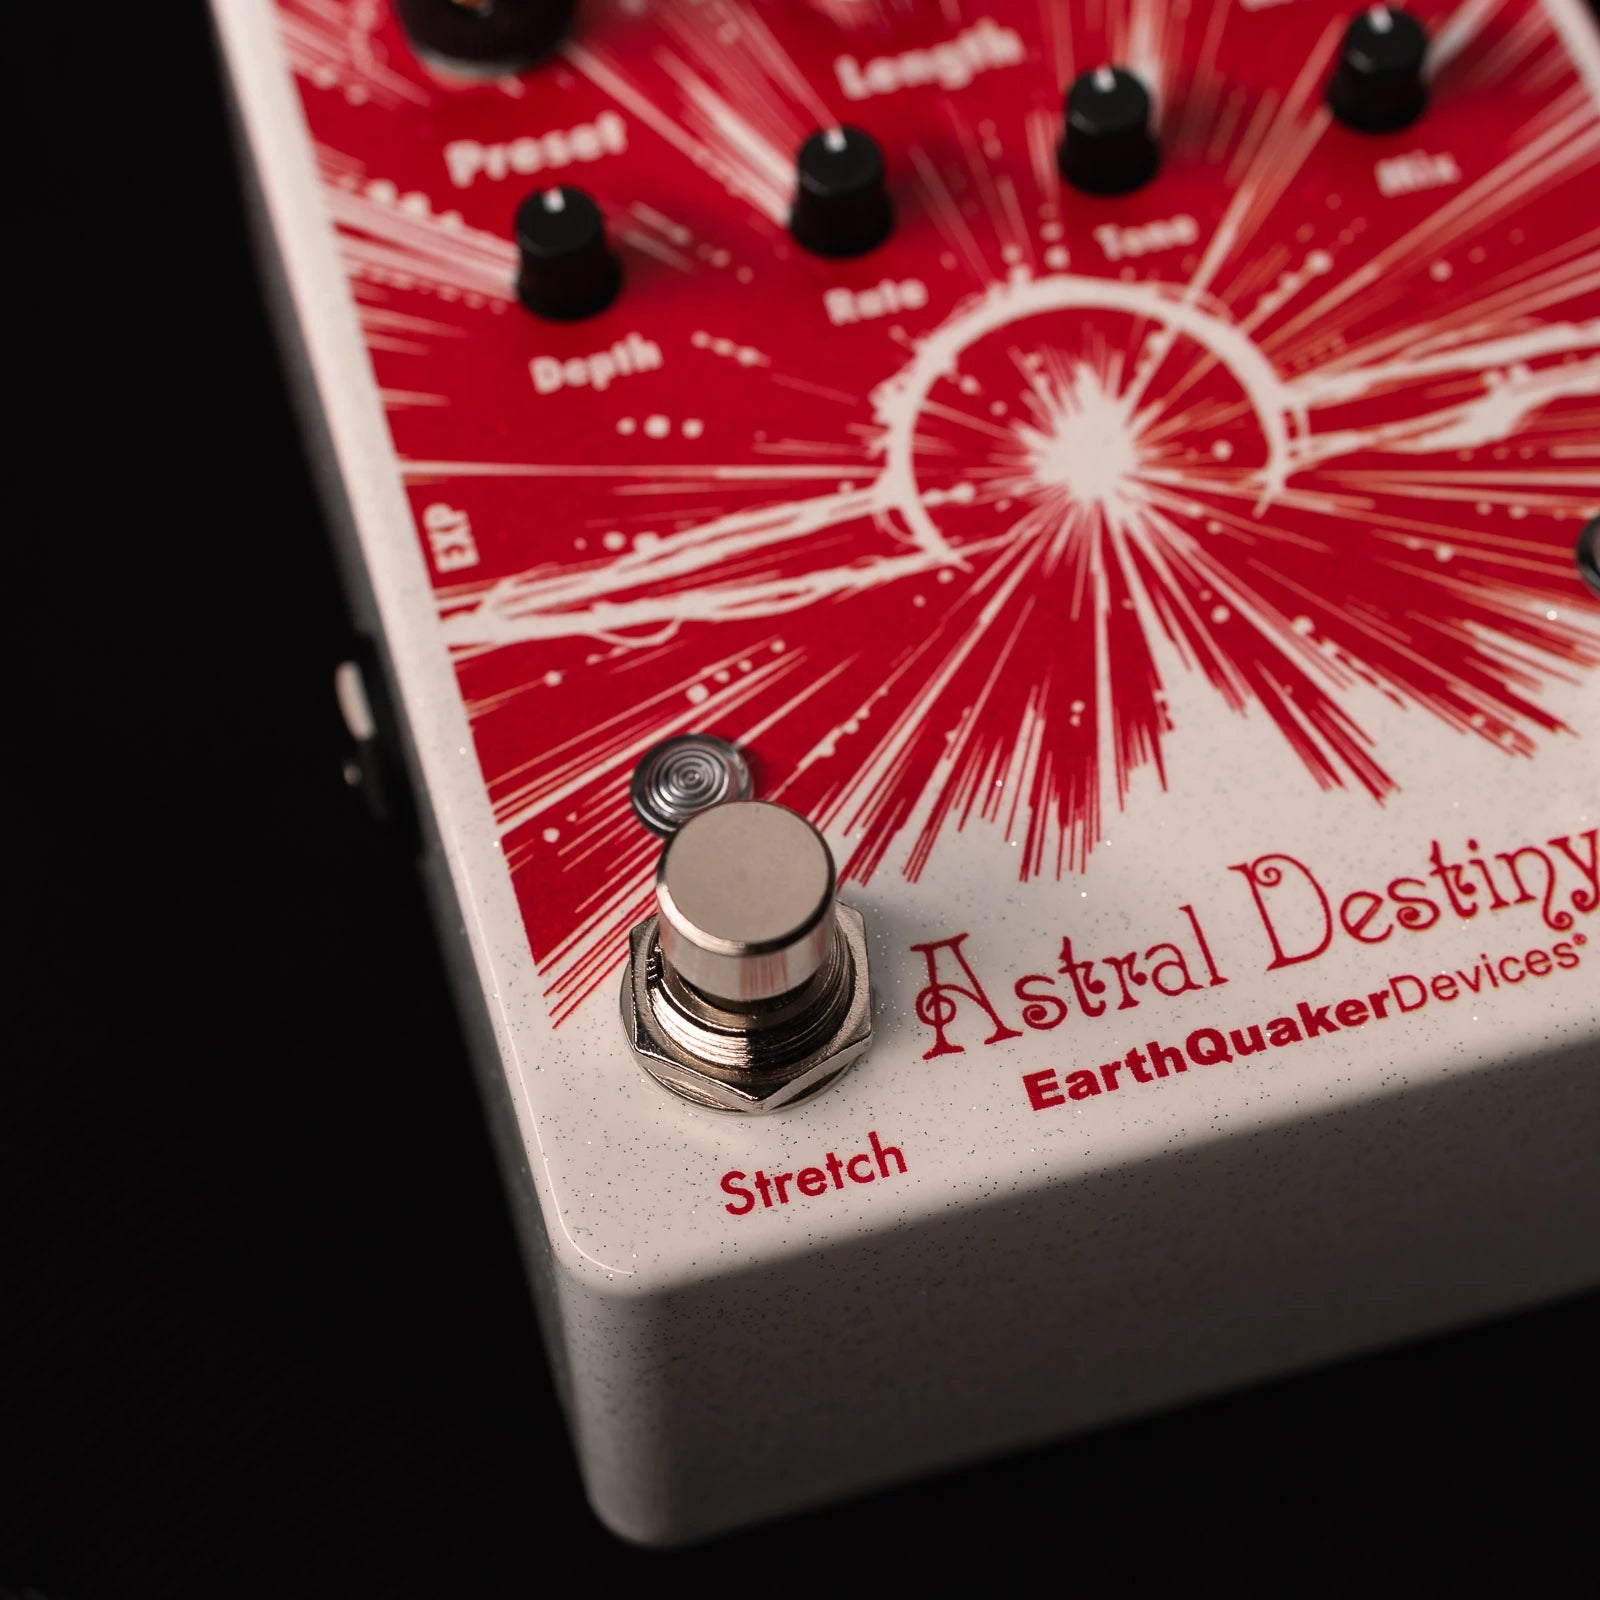 Earthquaker Devices Astral Destiny Stretch function